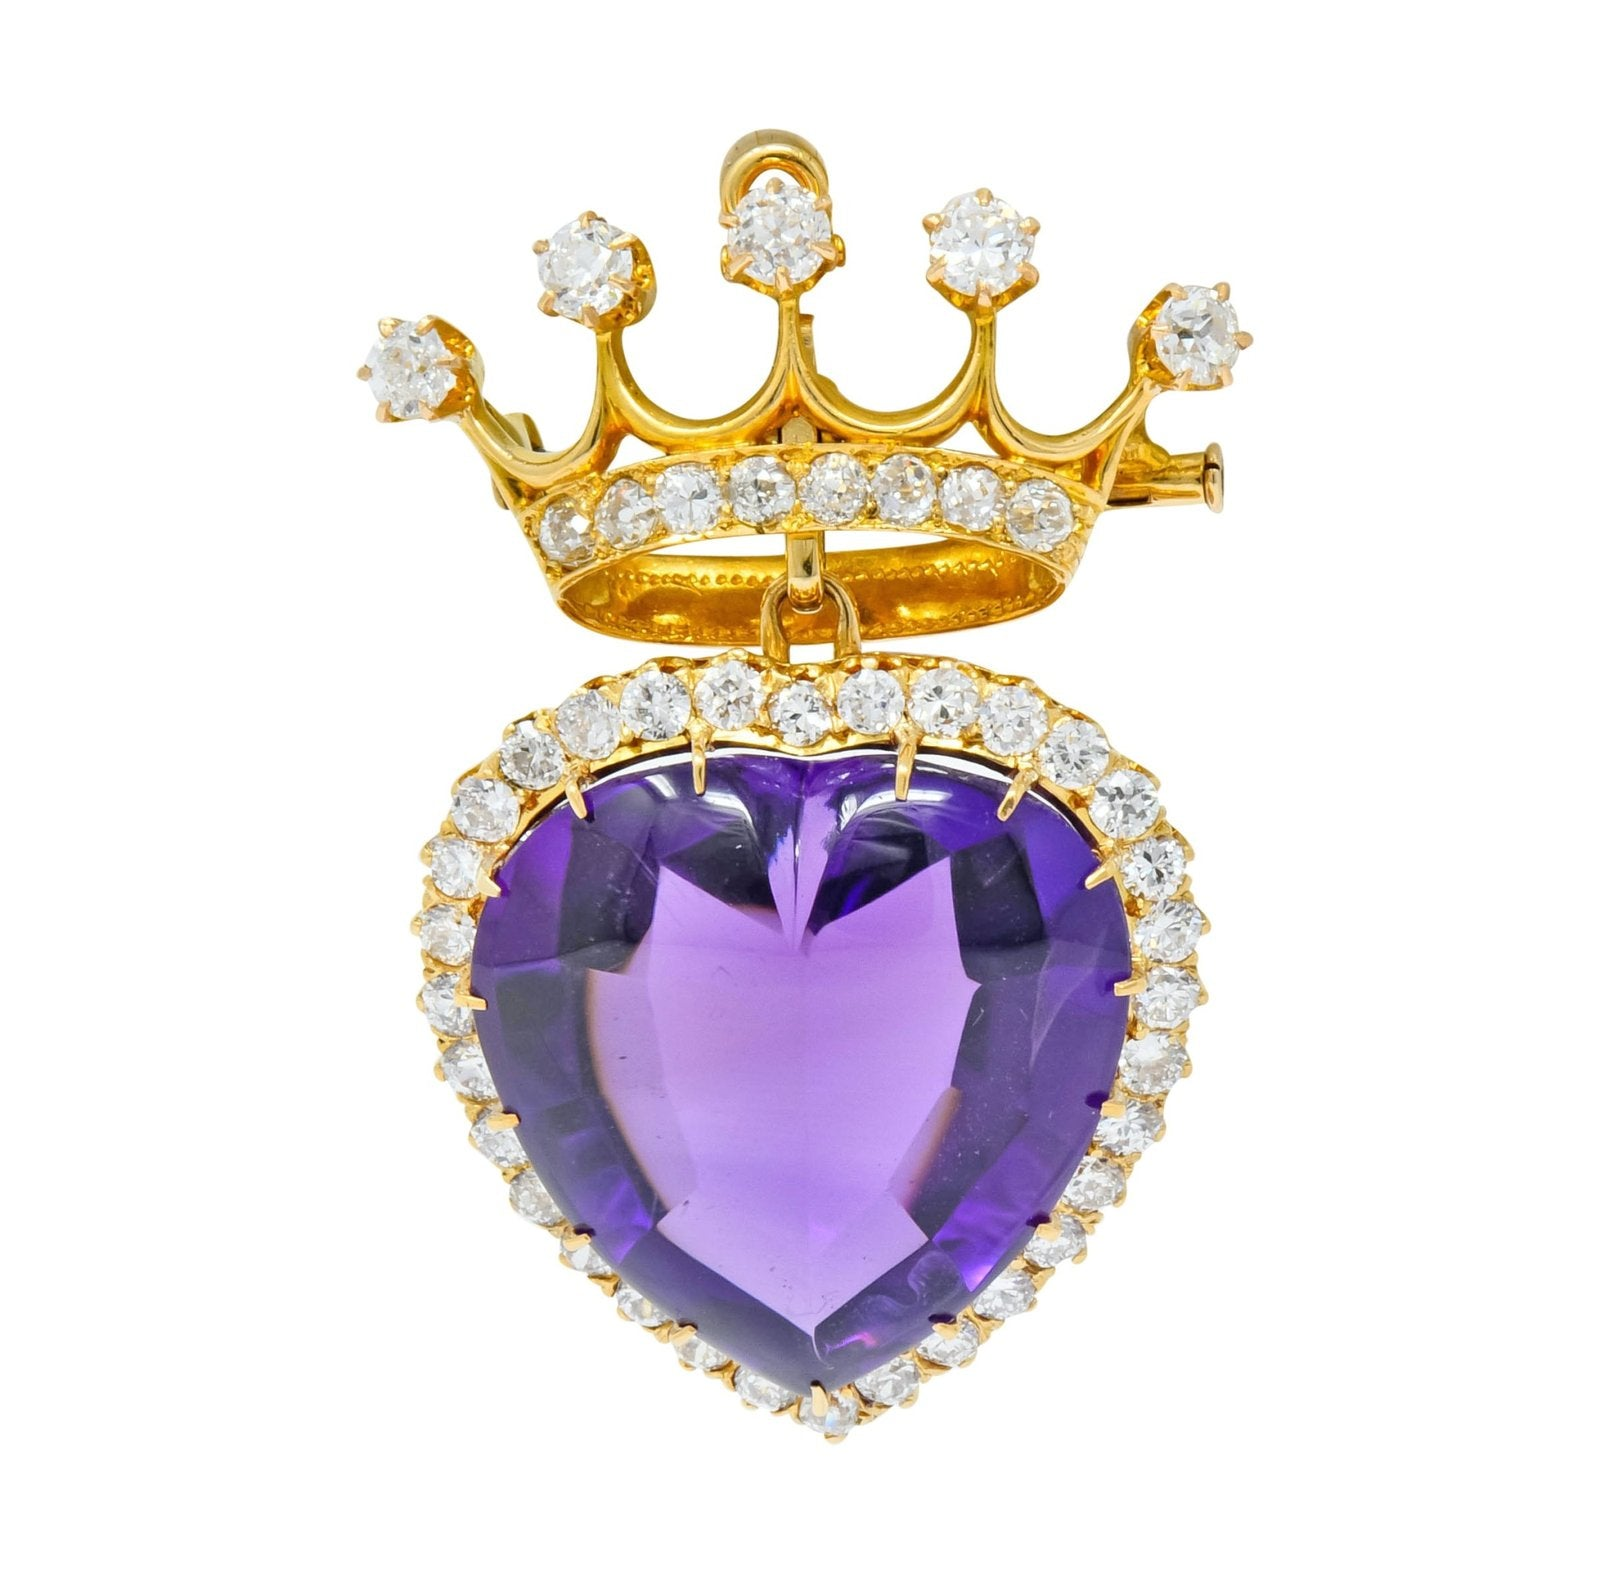 Victorian Crowned Heart Brooch Purple Heart Amethyst Cabochon Diamond Halo